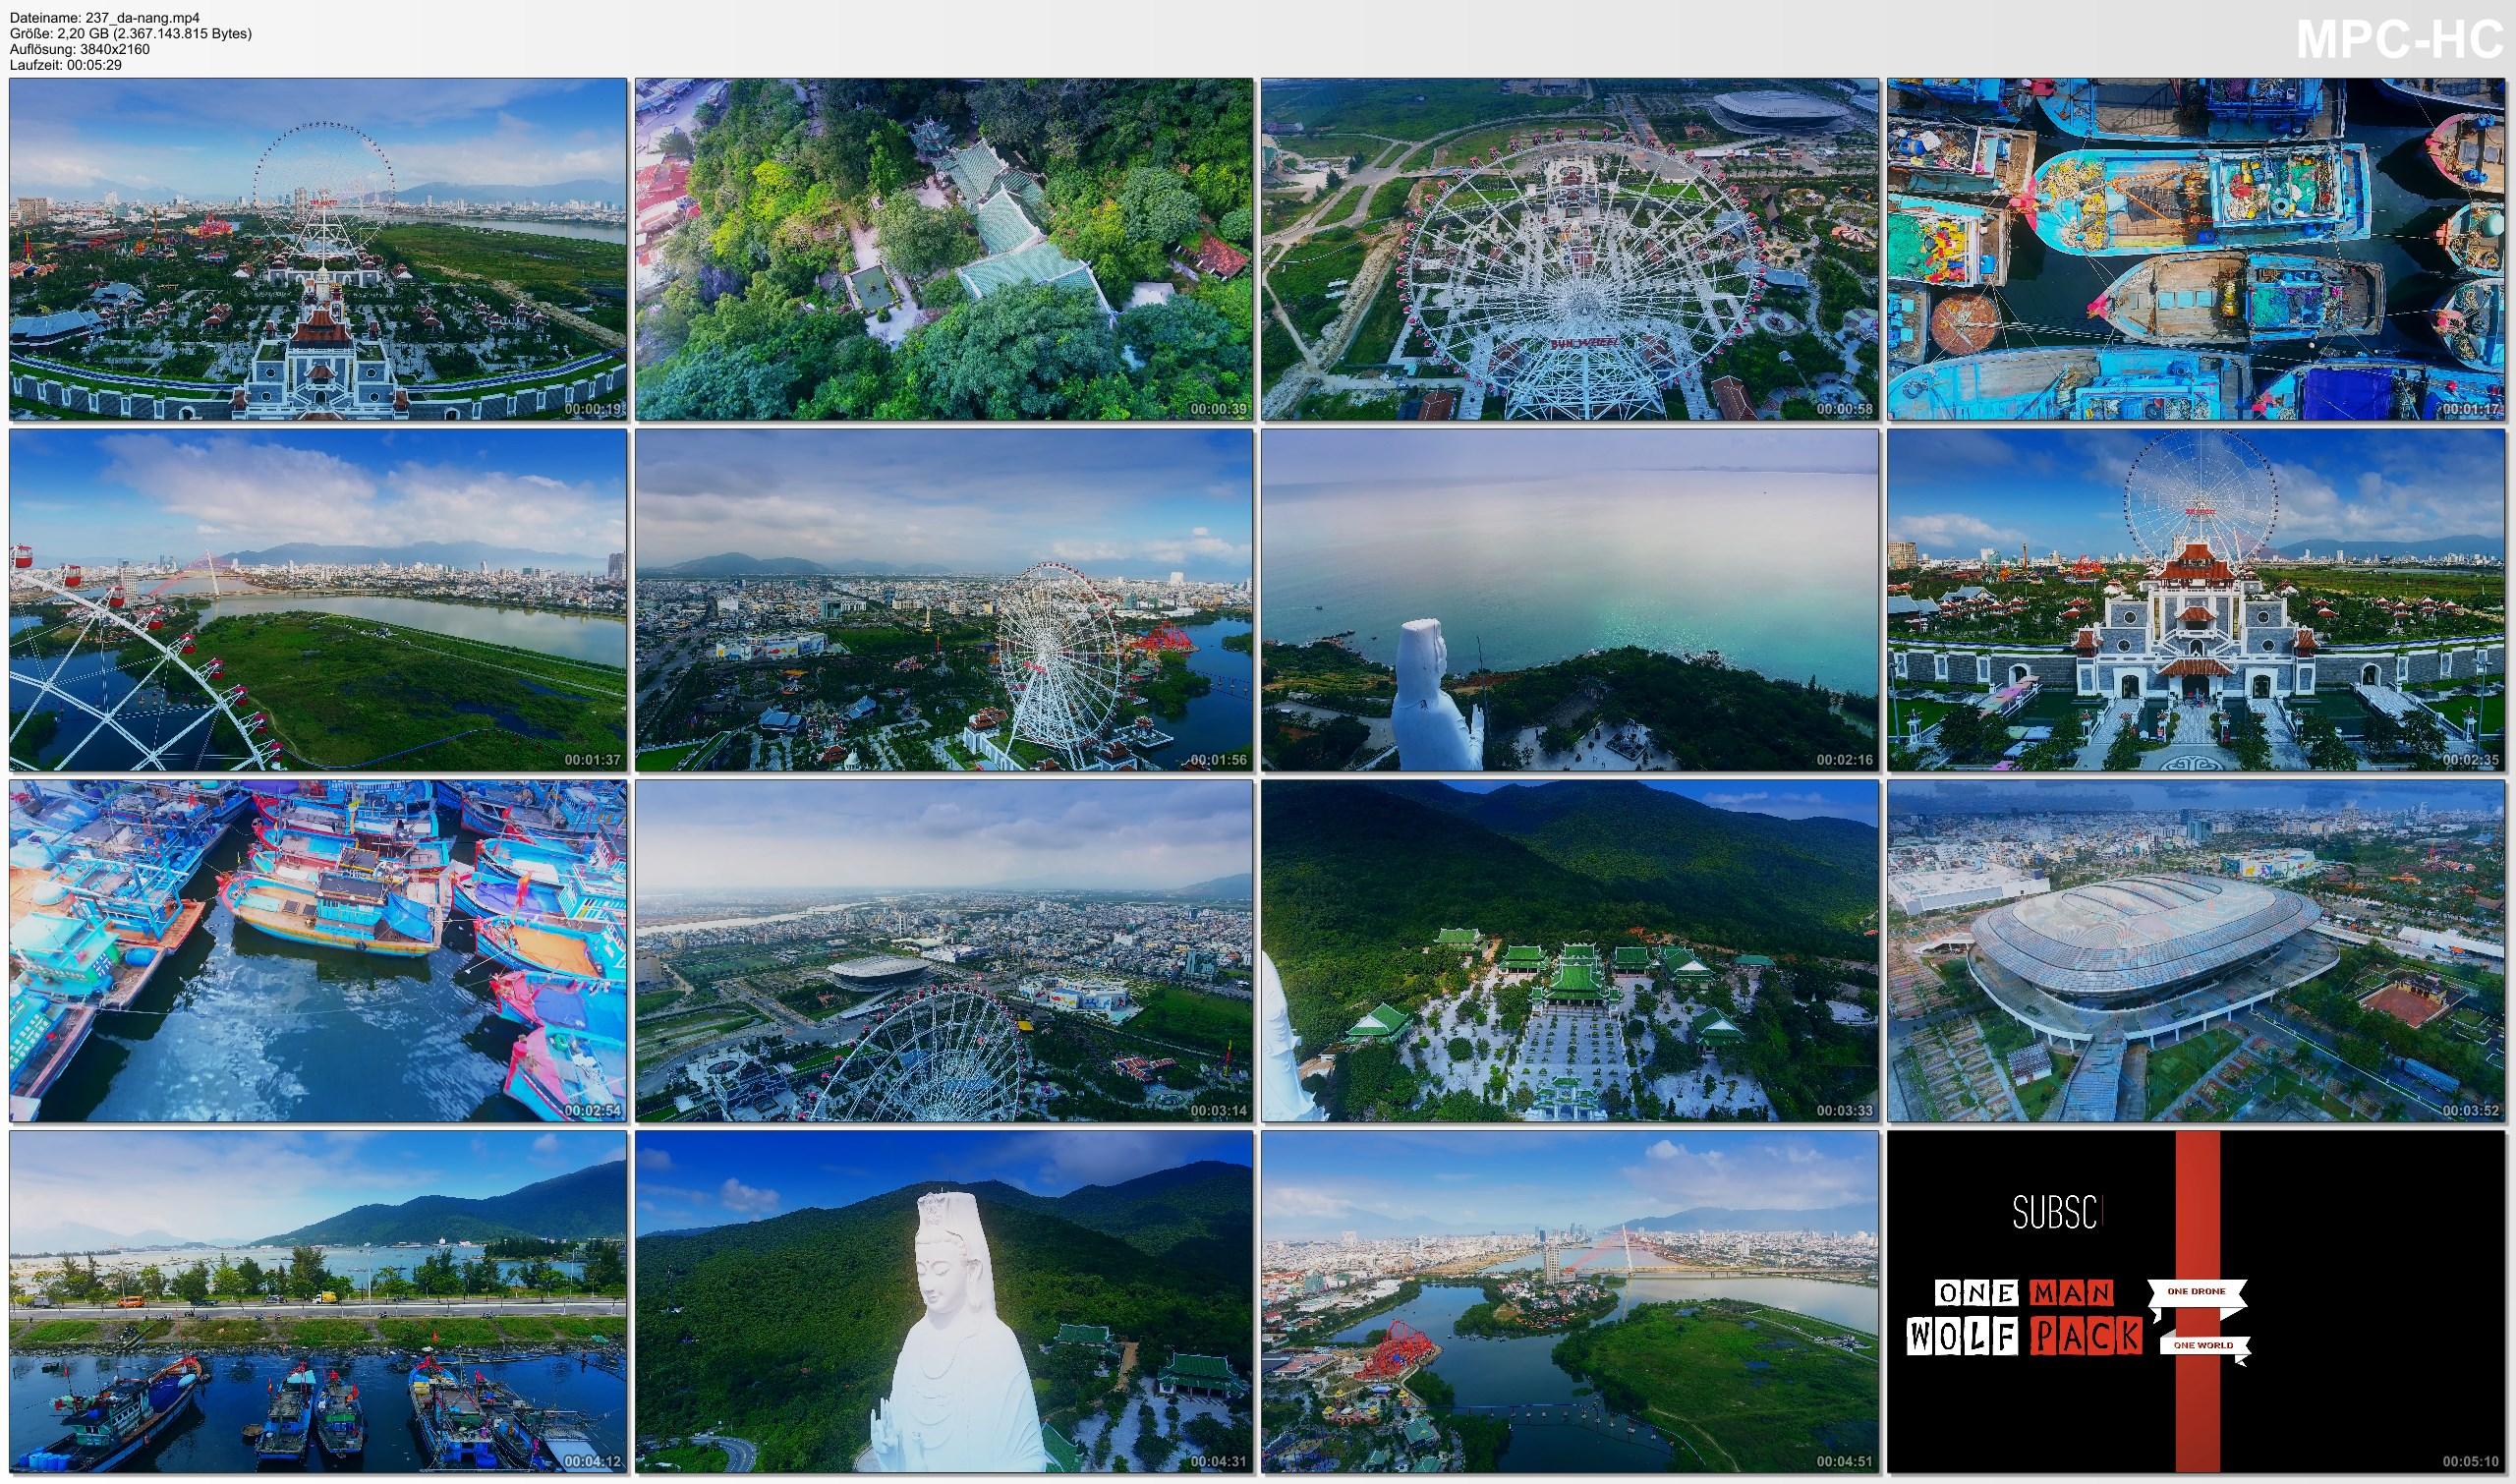 Drone Pictures from Video 【4K】Drone Footage | Da Nang - VIETNAM 2019 ..:: The Timeless Charm of Southeast Asia